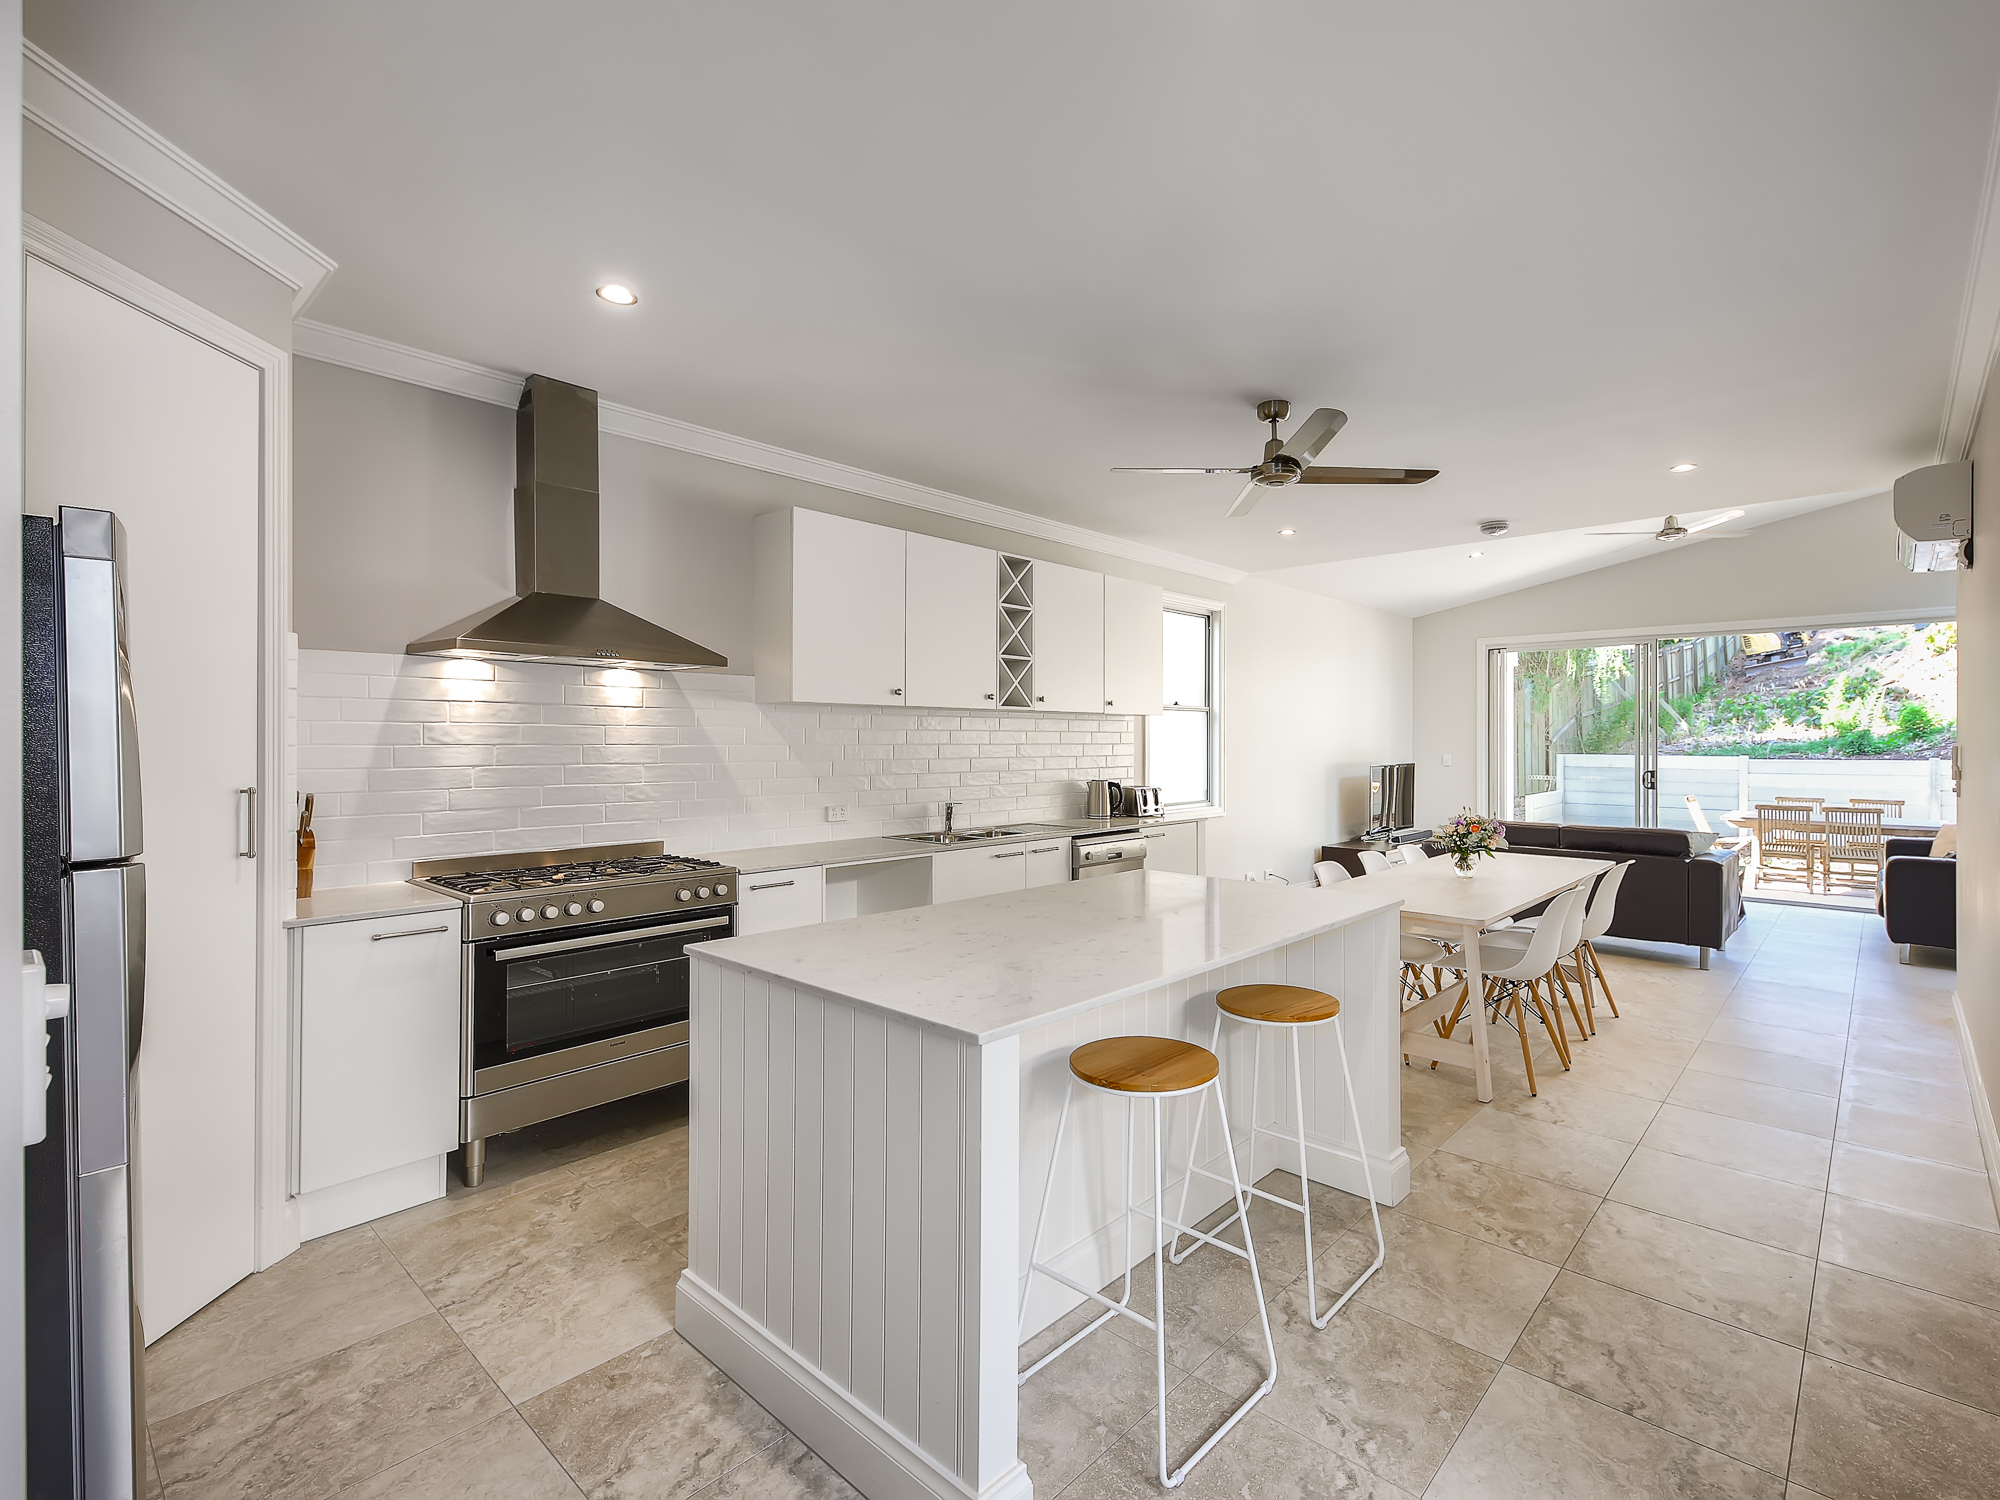 Kitchen designs brisbane southside gold coast kitchen for Kitchen ideas brisbane